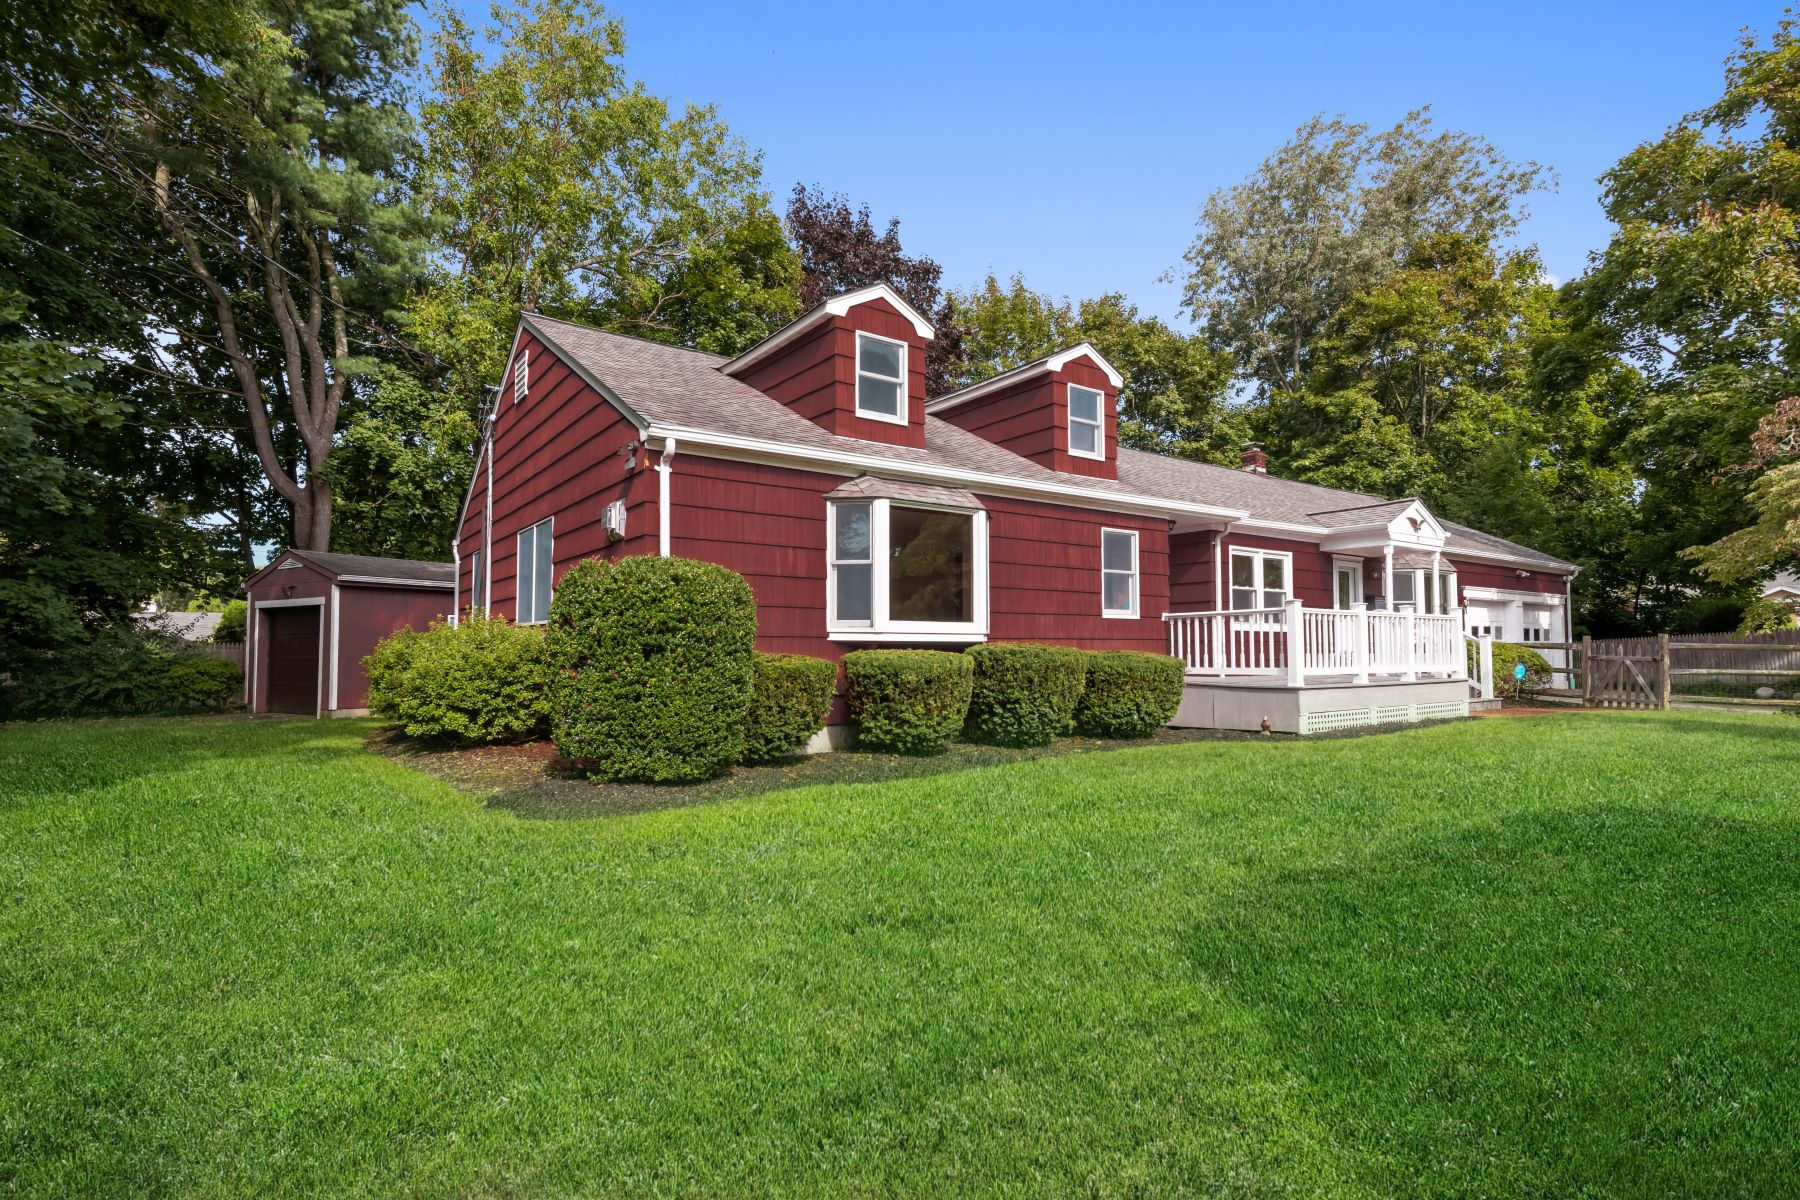 Single Family Homes for Sale at 9 Tanglewood Court, Greenlawn, Ny, 11740 9 Tanglewood Court Greenlawn, New York 11740 United States